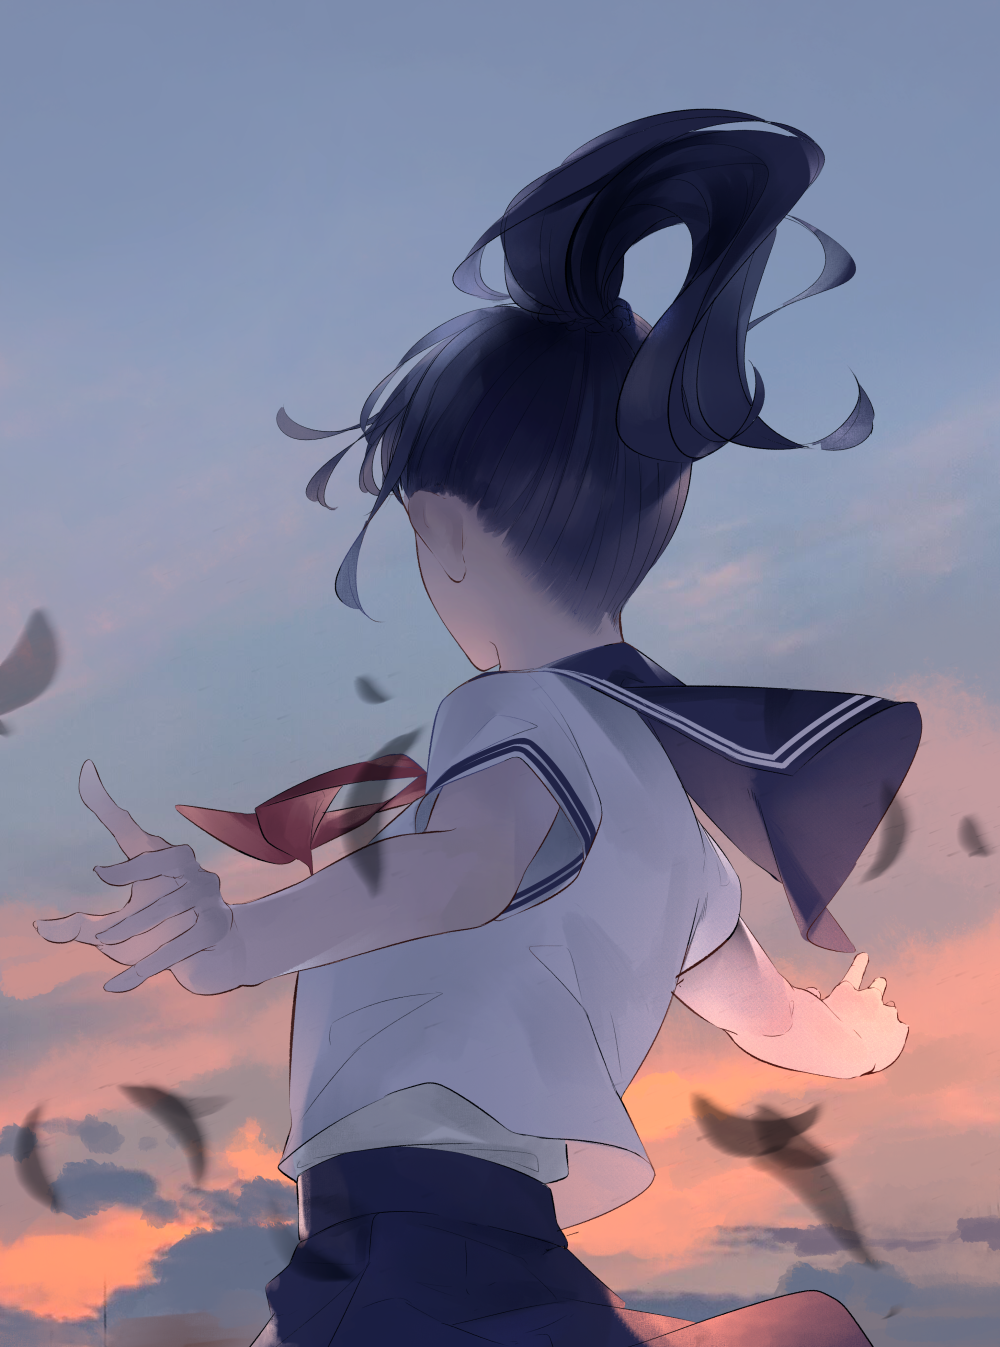 1girl black_hair blue_neckwear blue_skirt blue_sky facing_away from_behind highres long_hair necktie original outdoors outstretched_arms pleated_skirt ponytail red_neckwear shirt short_sleeves skirt sky solo sousou_(sousouworks) spread_arms standing sunset upper_body white_shirt